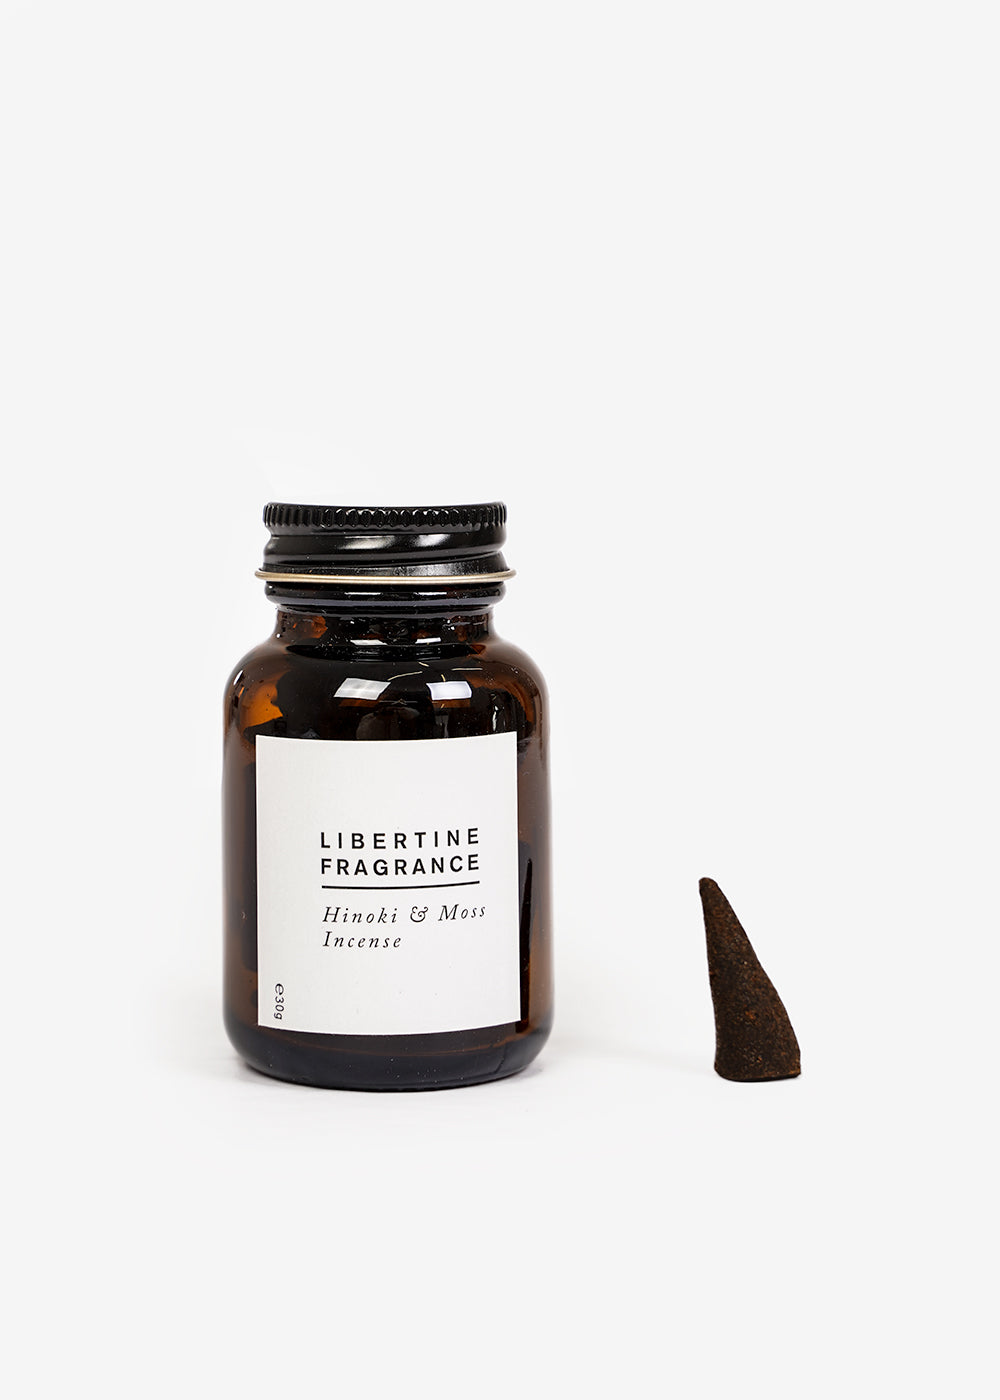 Libertine Fragrance Hinoki & Moss Incense — New Classics Studios